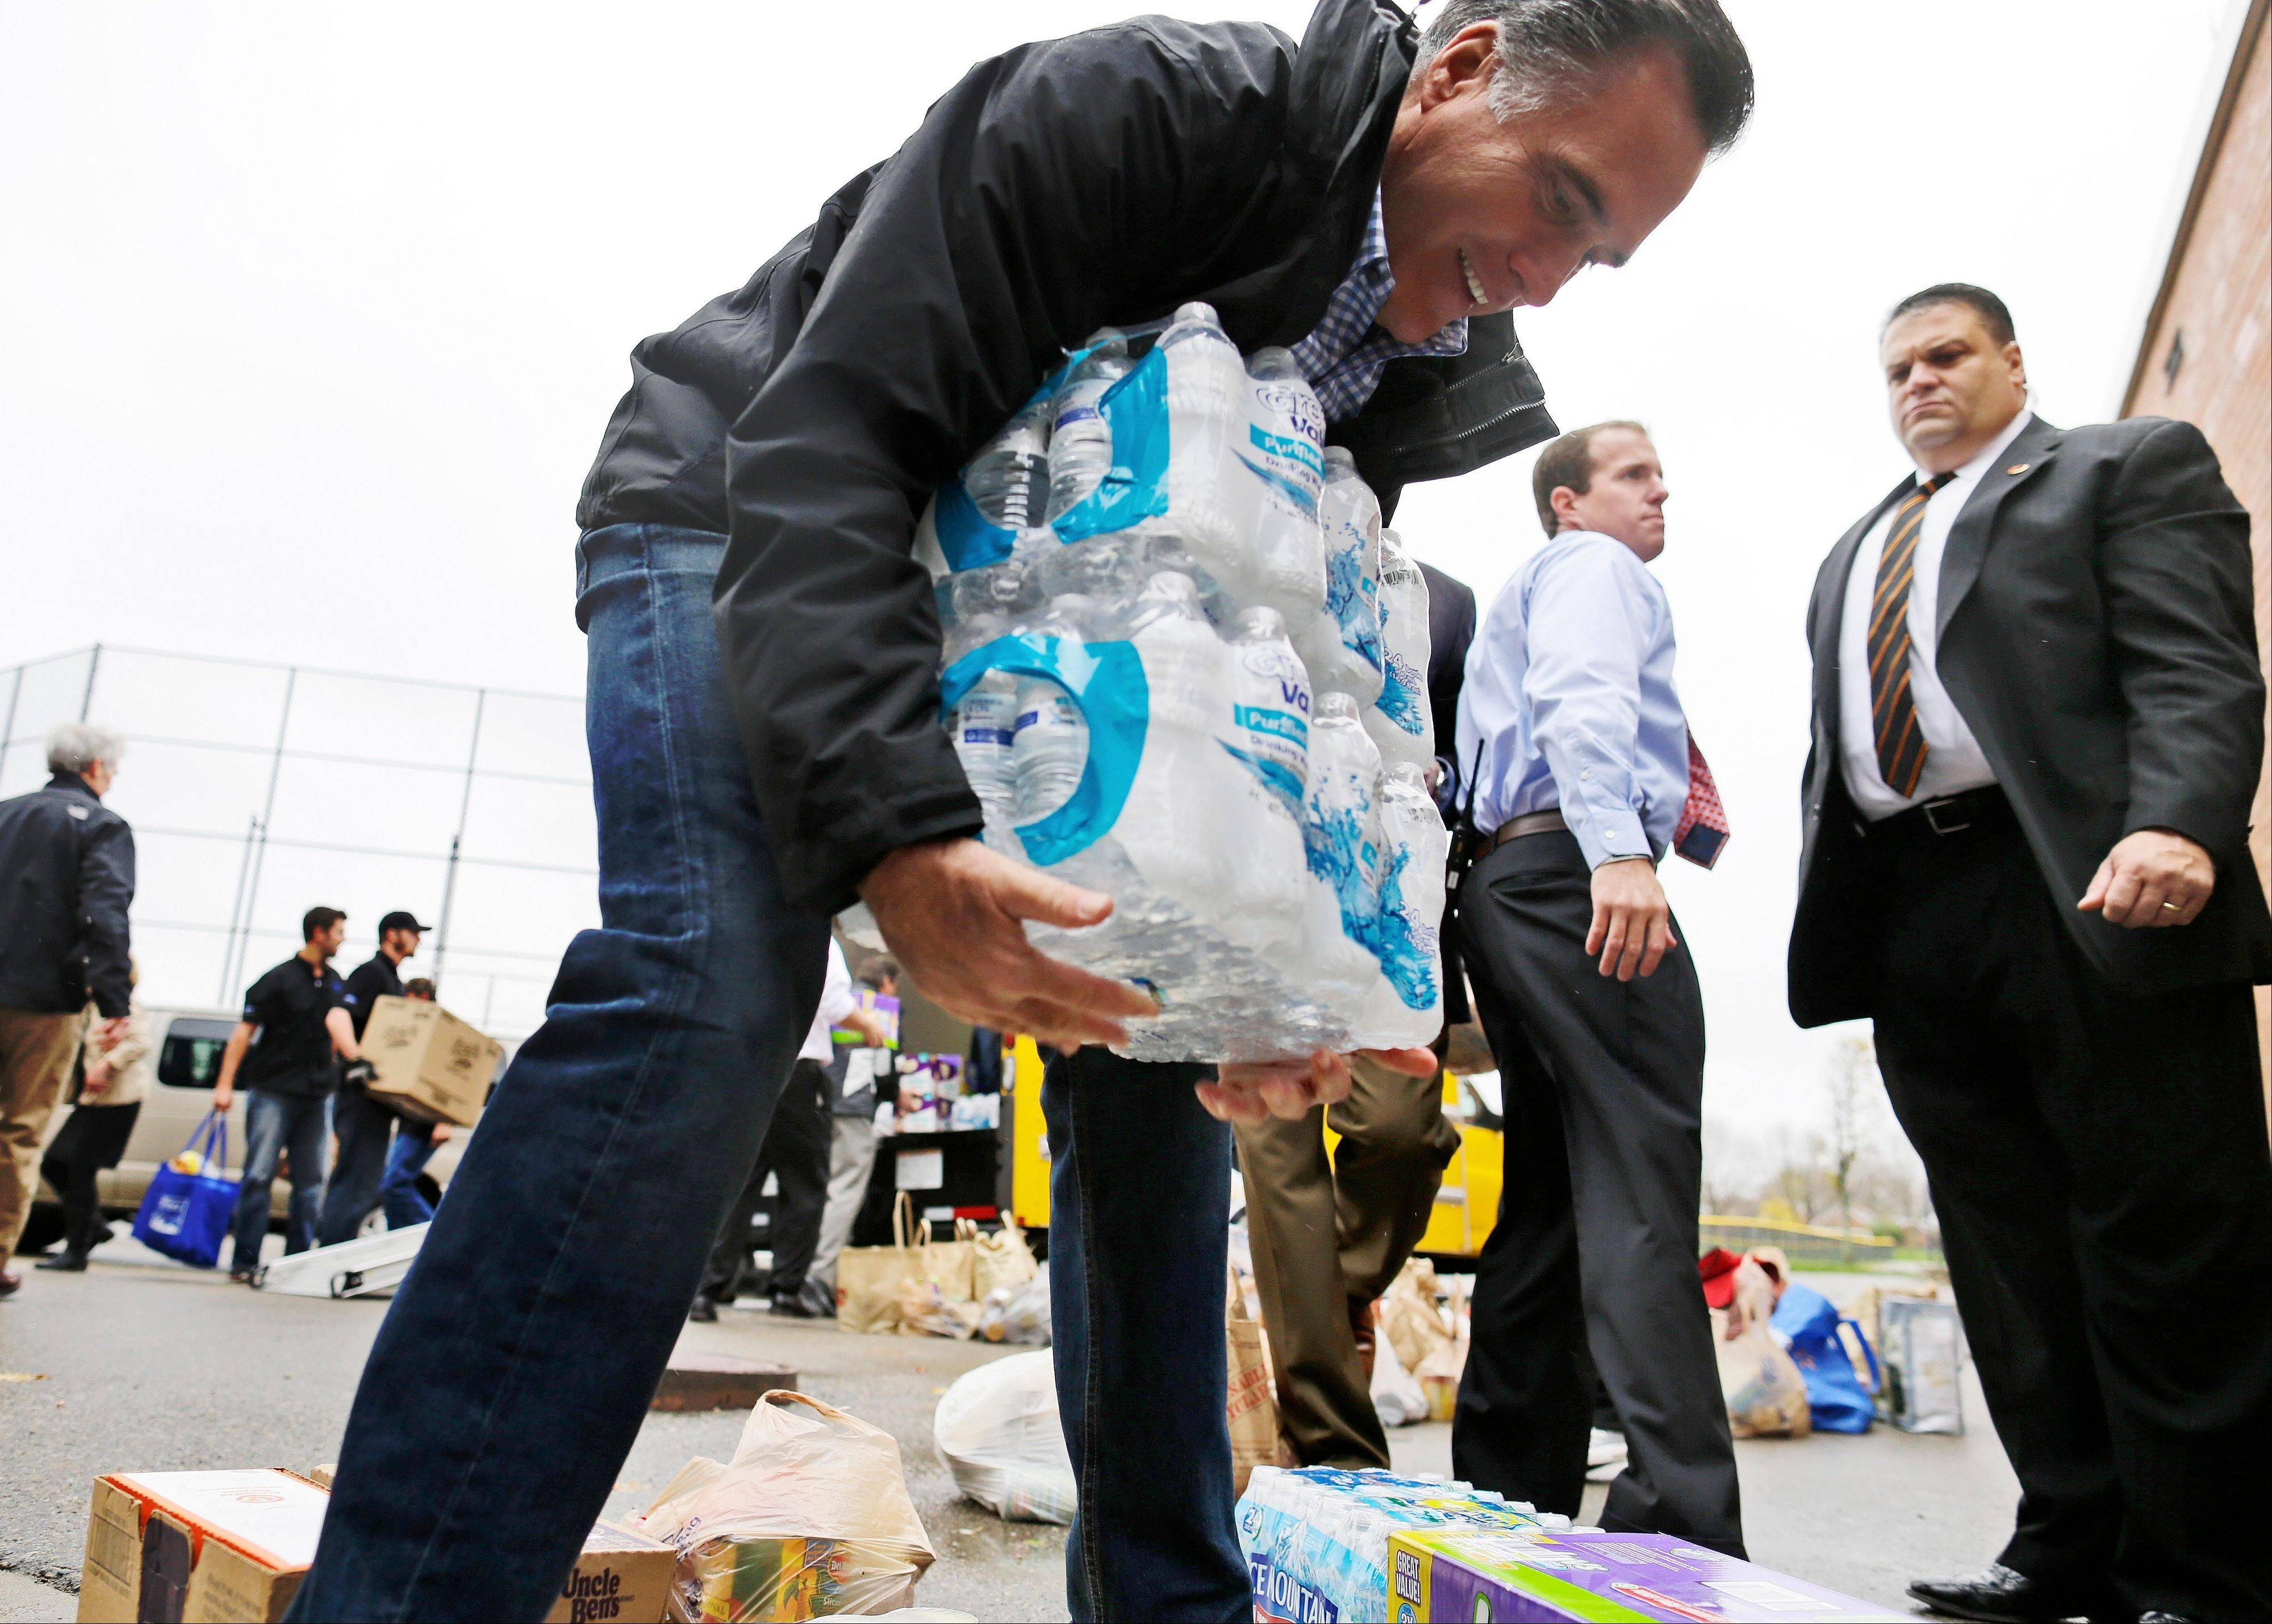 Republican presidential candidate, former Massachusetts Gov. Mitt Romney lifts bottles of water to load into a truck as he participates in a campaign event collecting supplies from residents and local relief organizations for victims of superstorm Sandy on Tuesday in Kettering, Ohio.